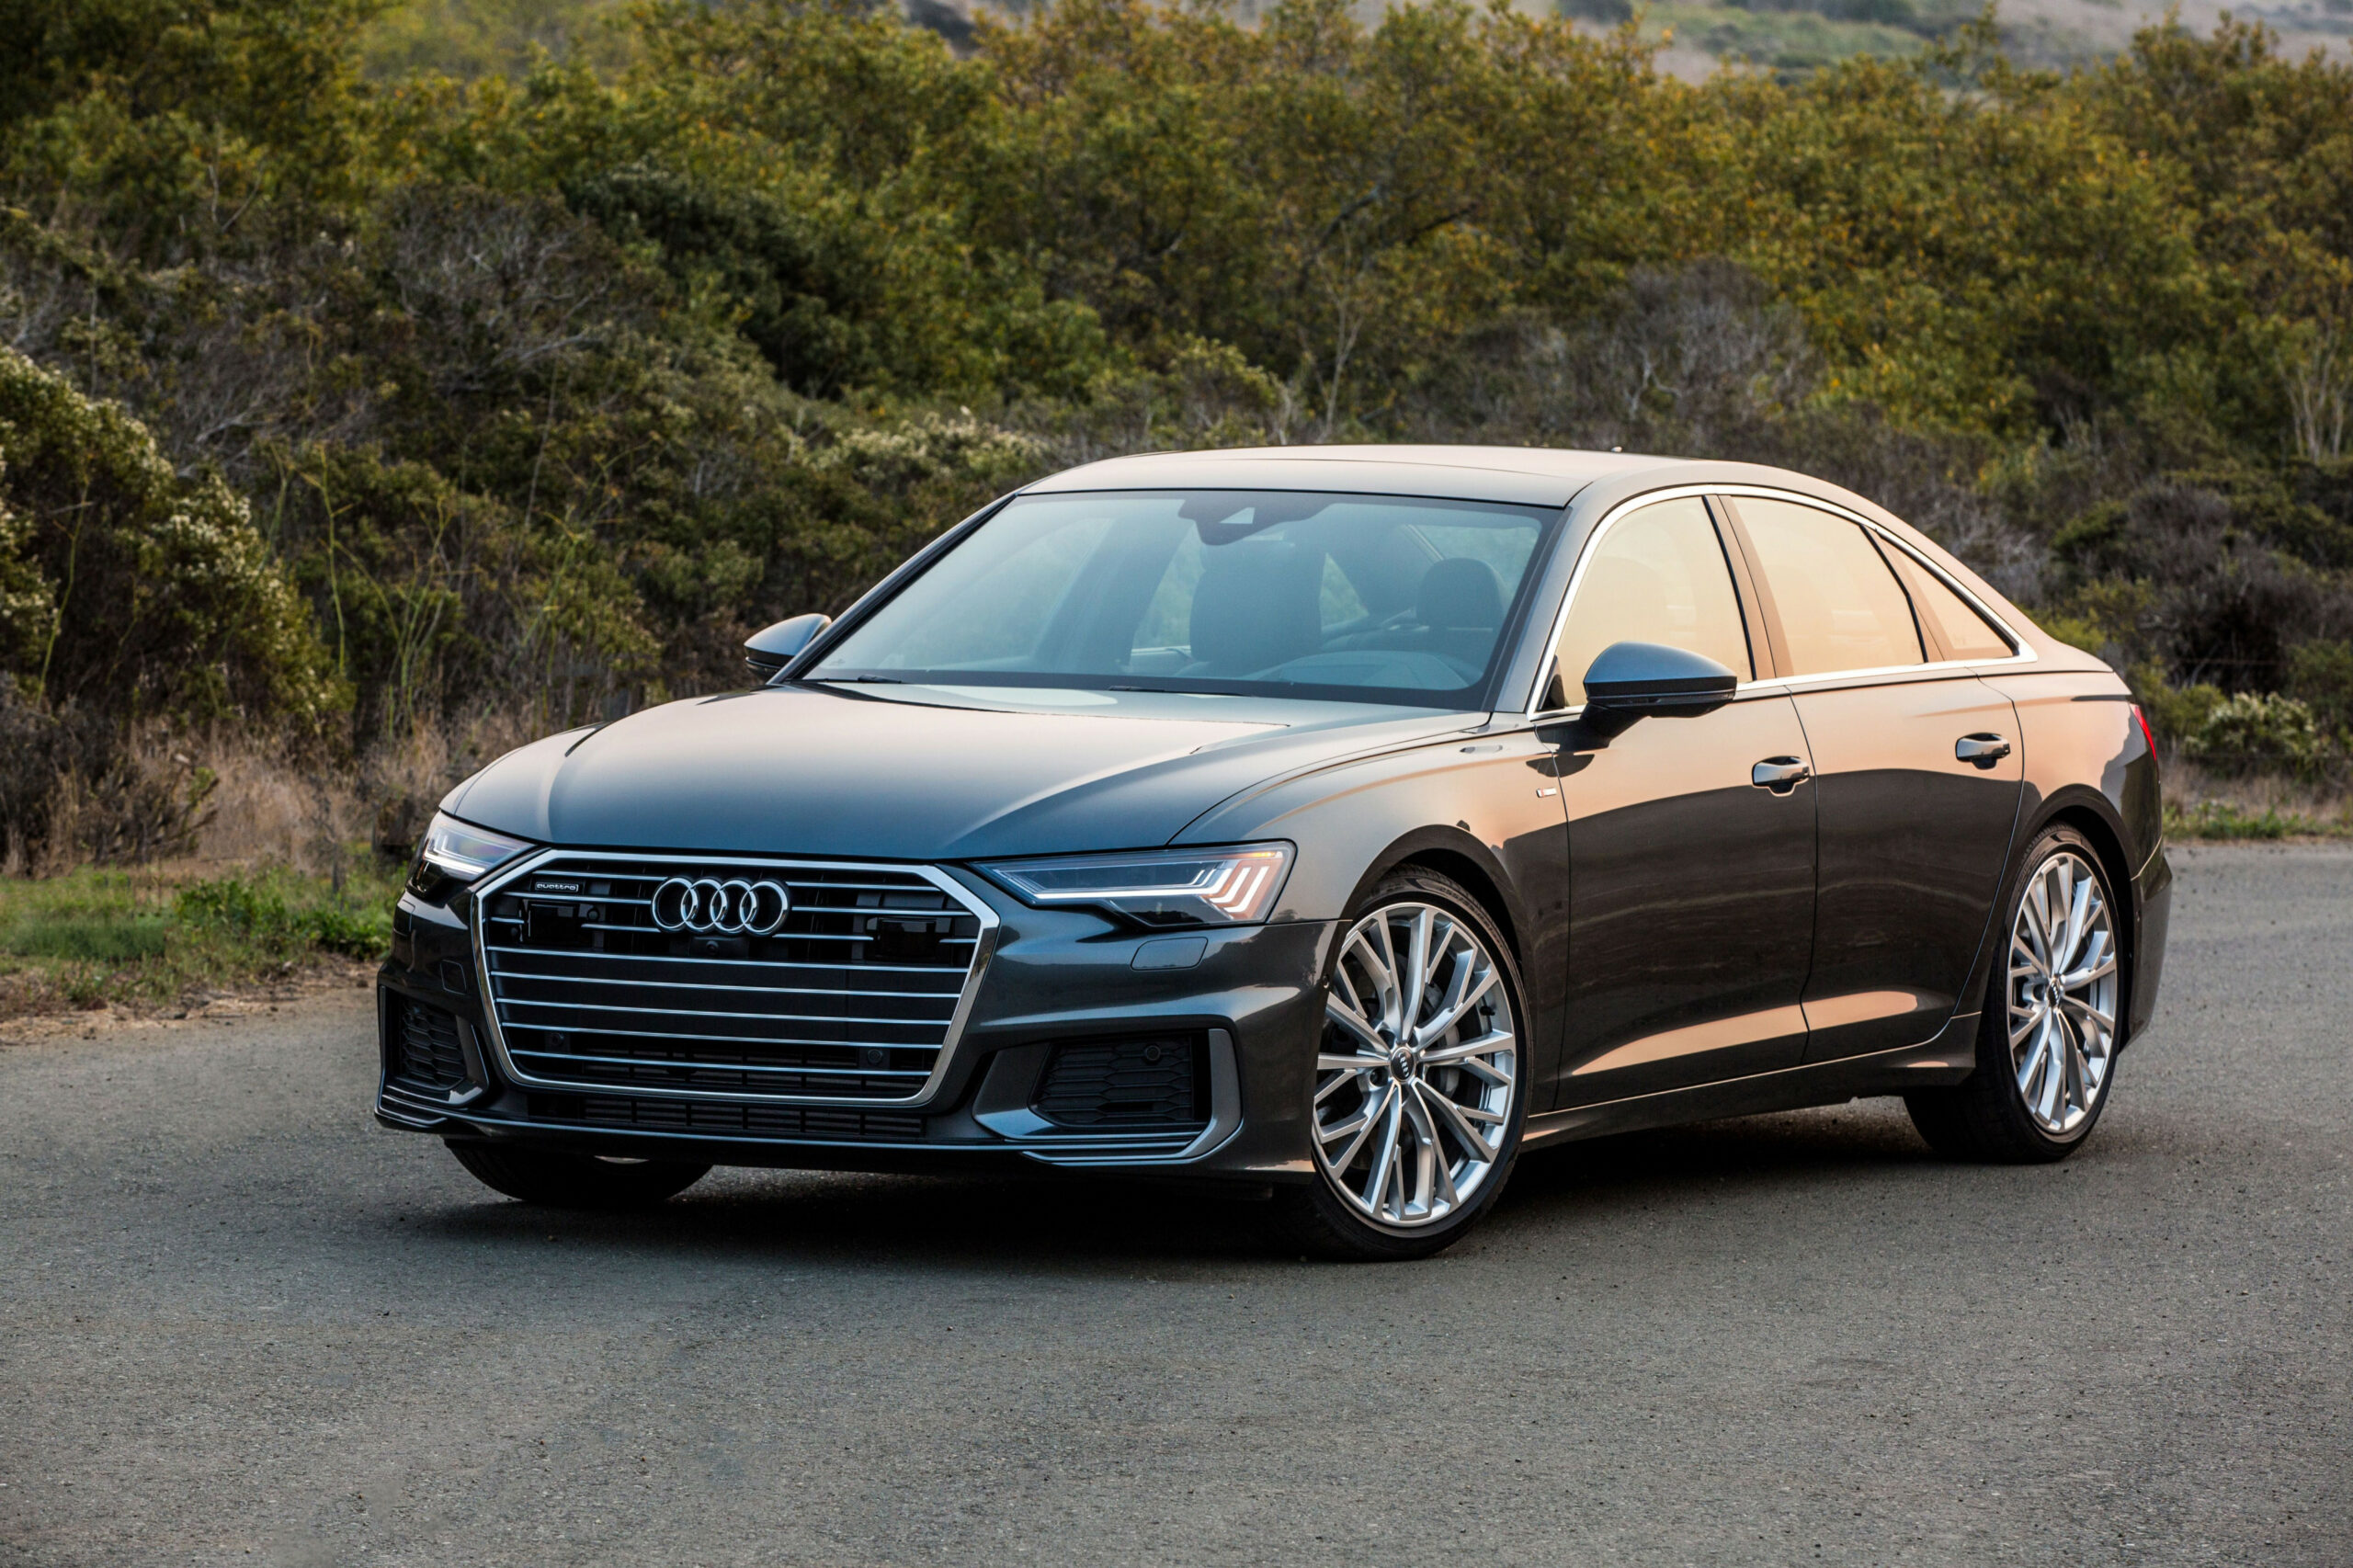 9 Audi A9 Review, Pricing, and Specs | 2020 Audi Models